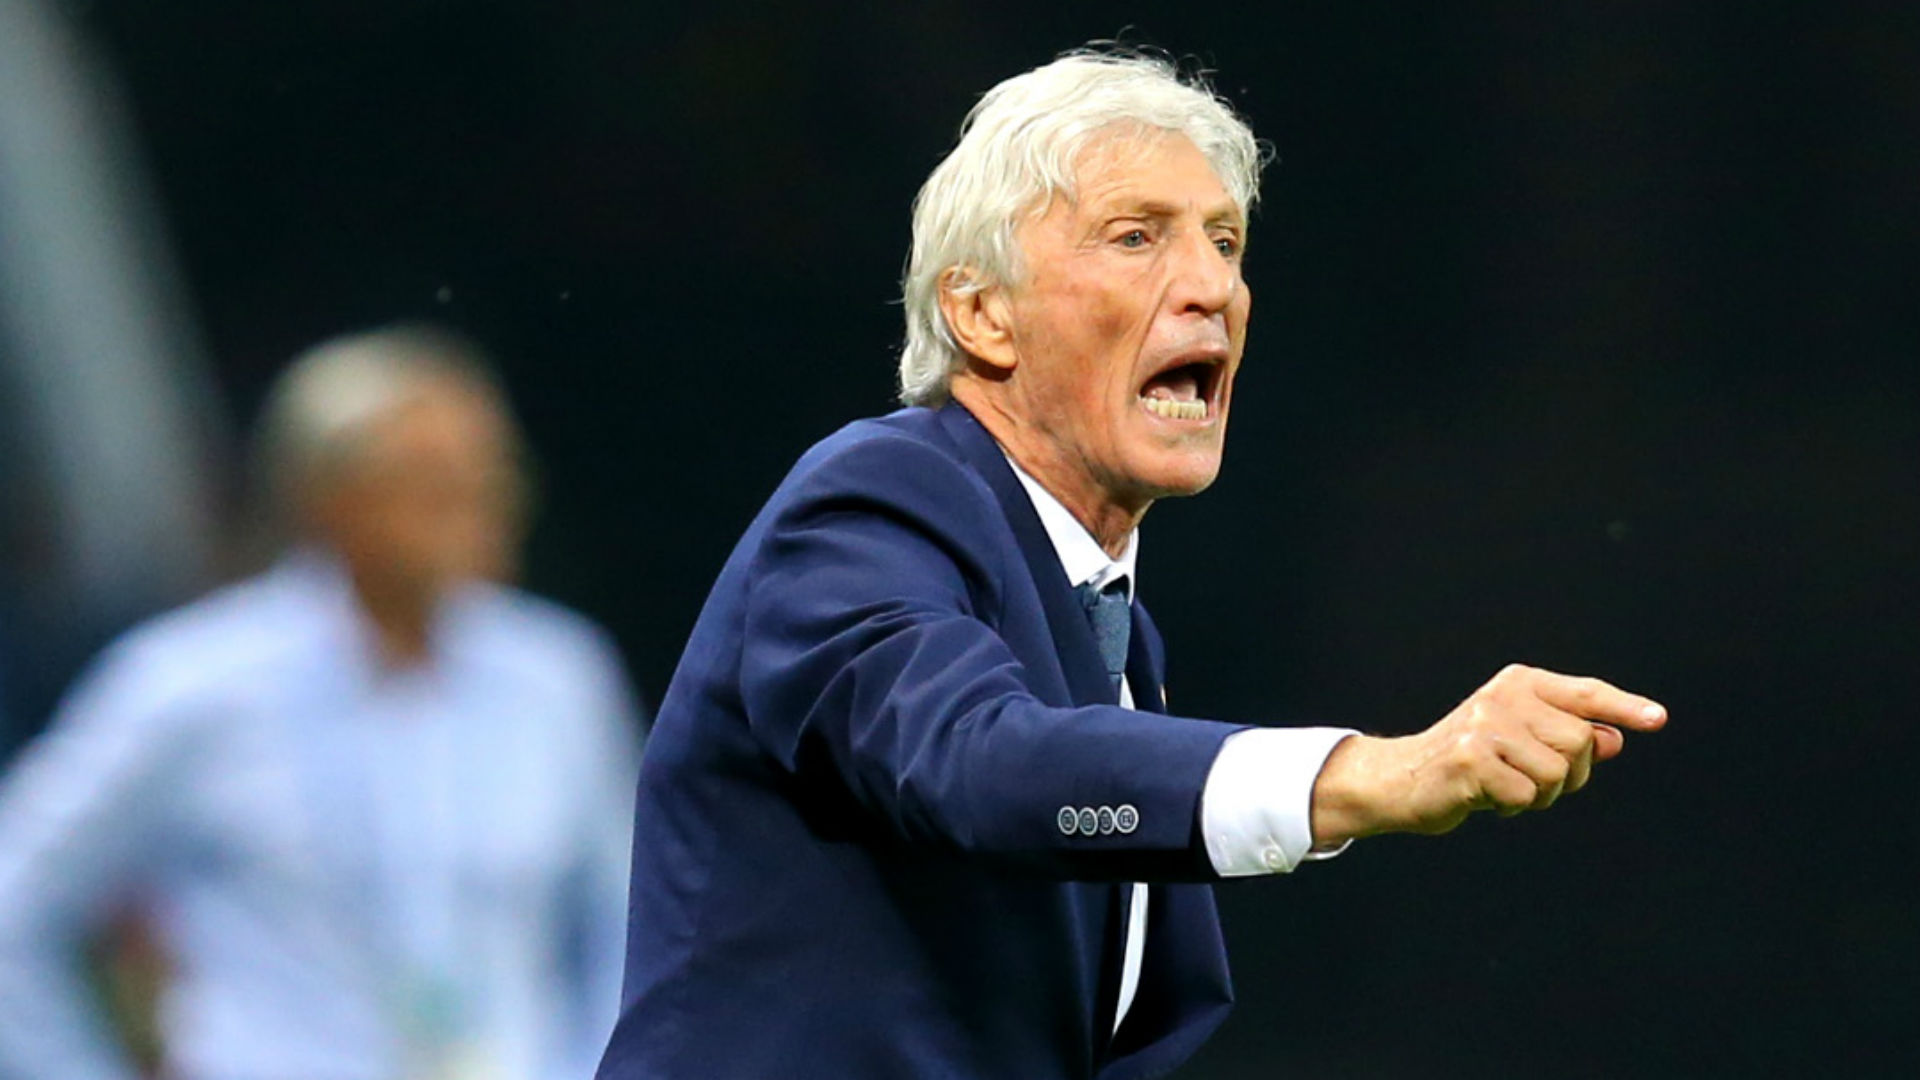 Colombia's Pekerman wary of confident England in last 16